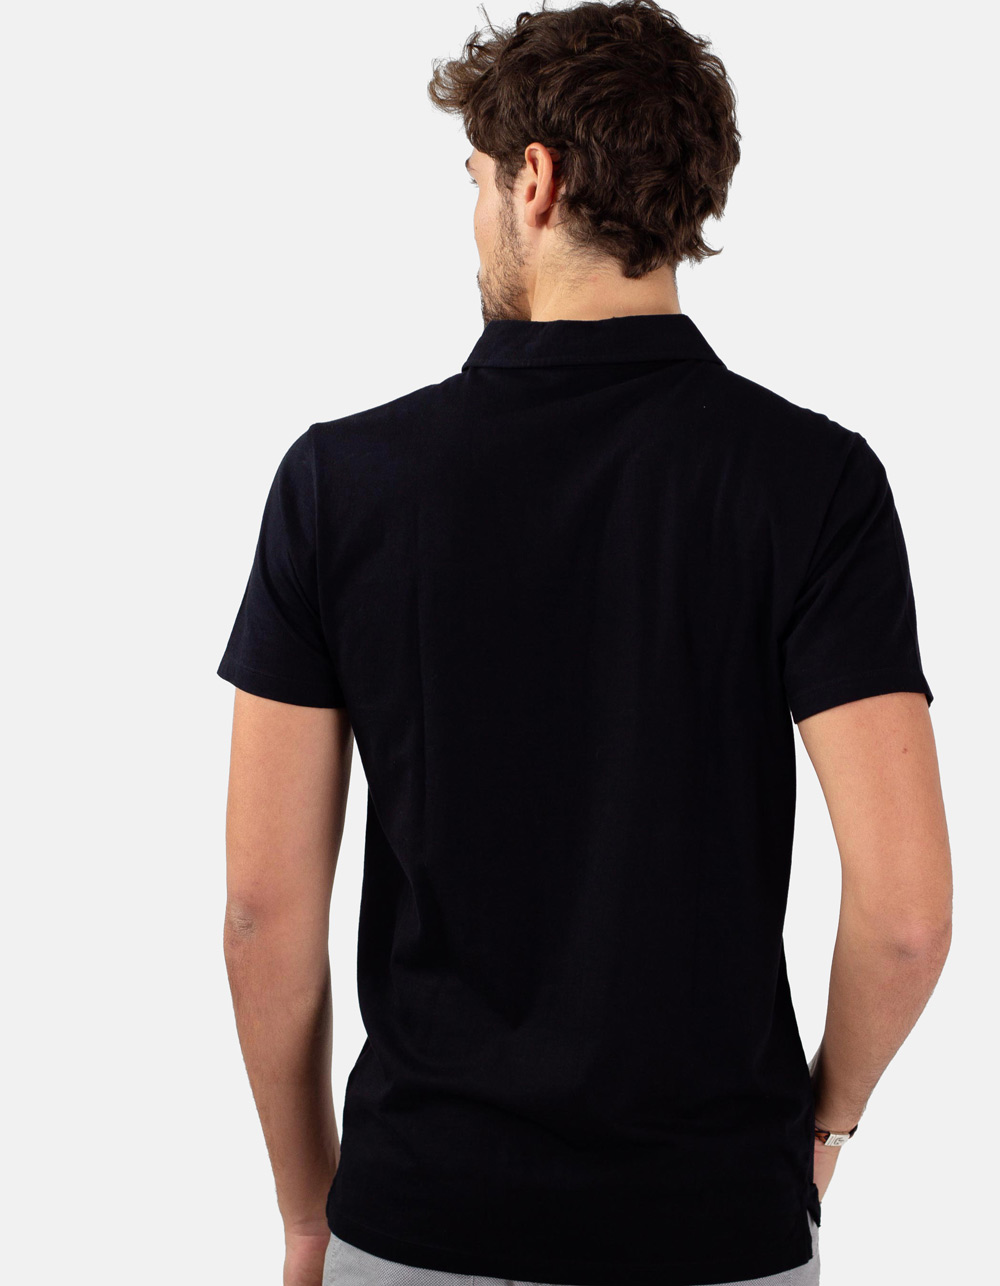 Black pocket polo shirt - Backside